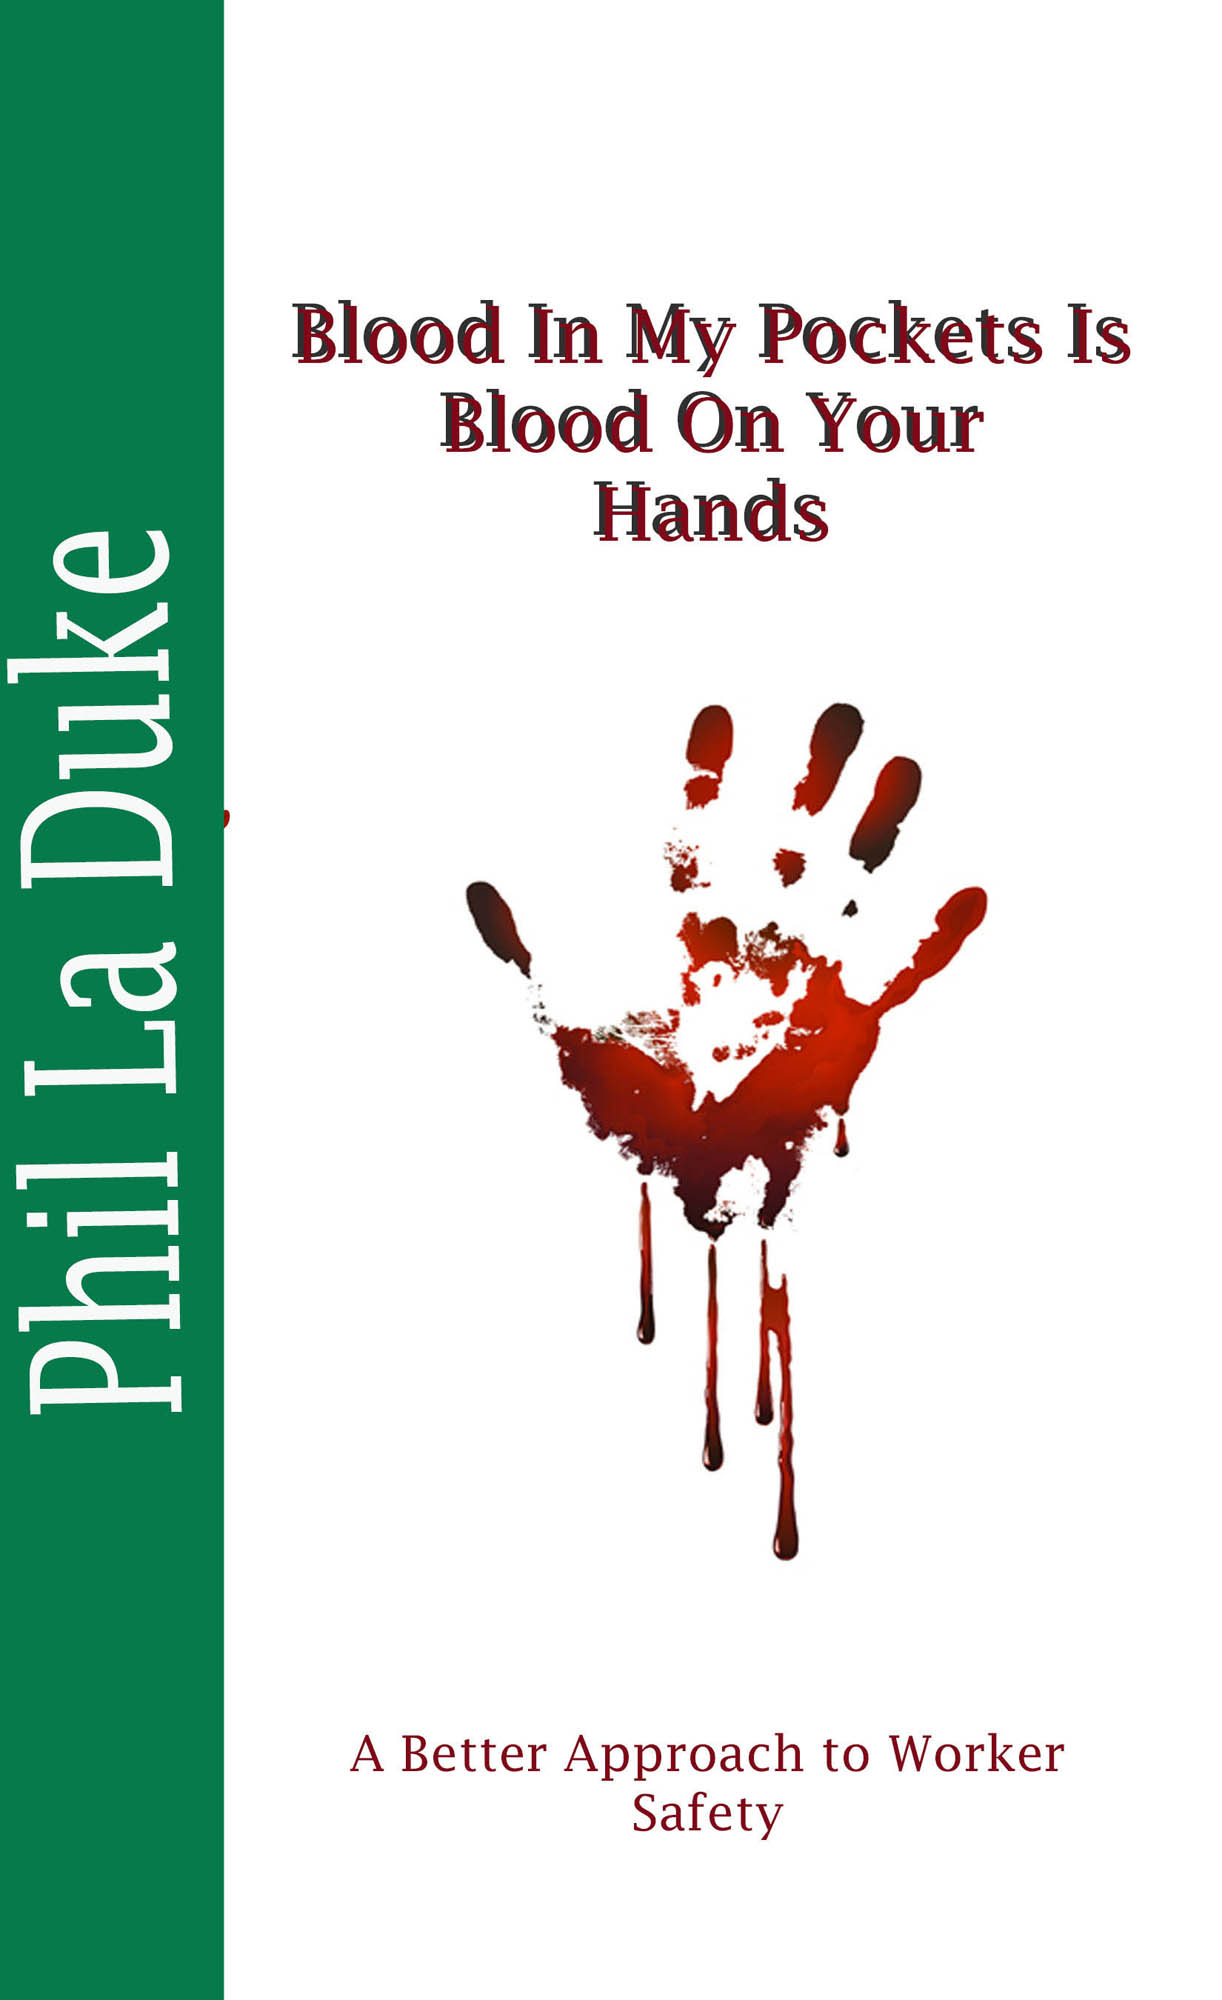 Blood On Hands Cover 2